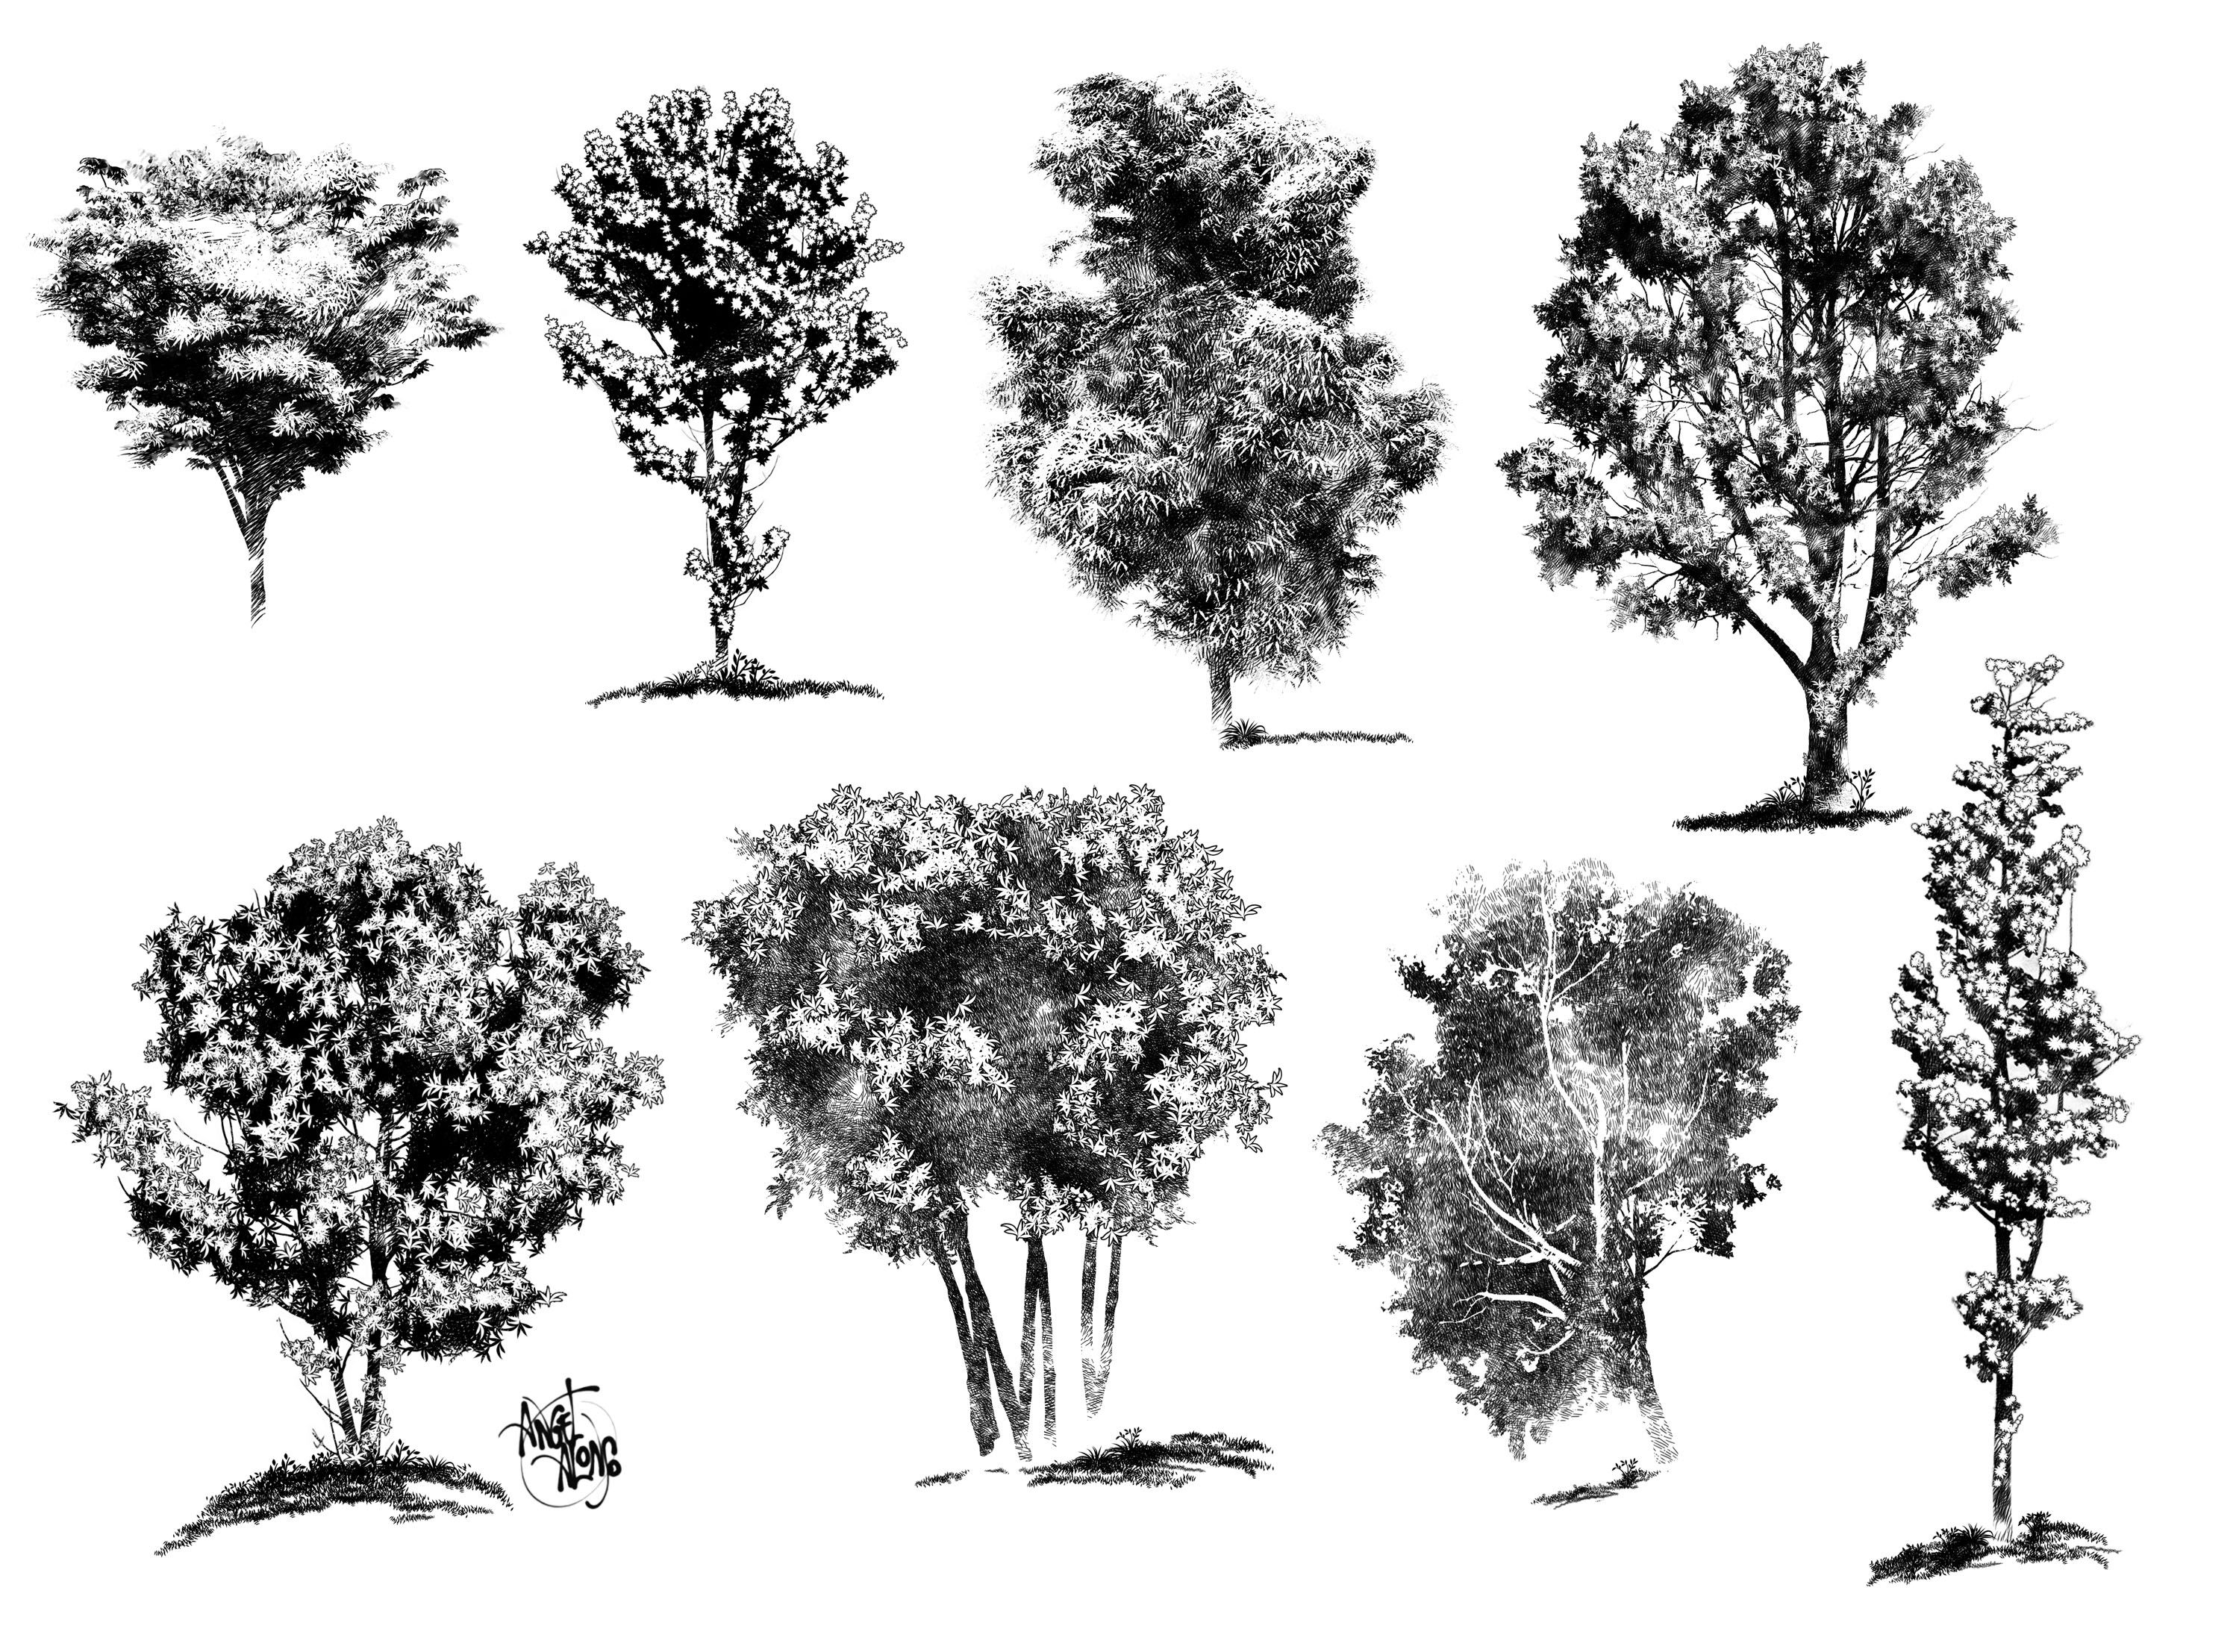 landscape architecture tree drawings spydelhigencookcom - Architecture Drawing Of Trees